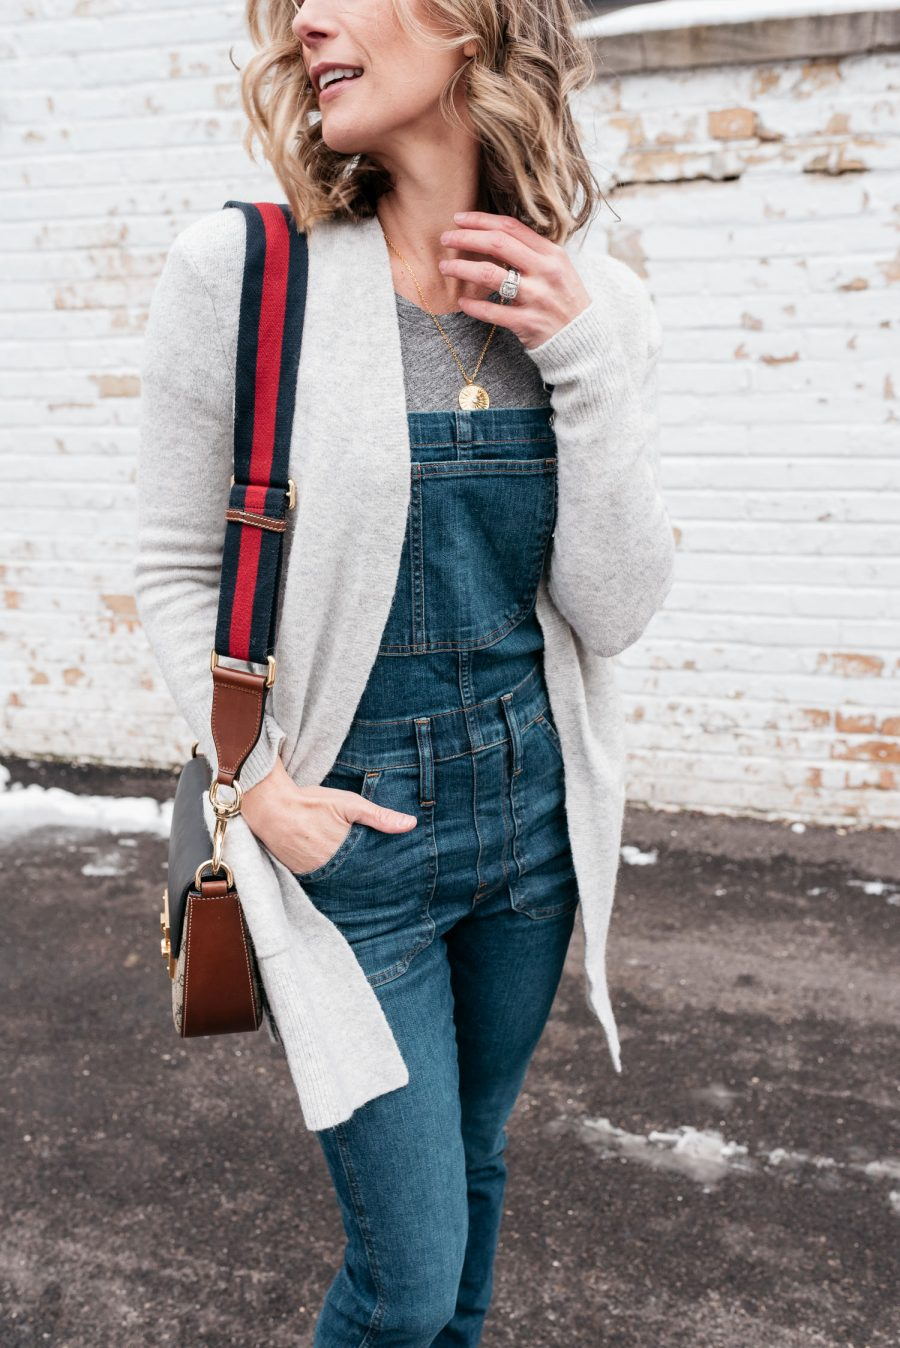 Overalls, cardigan, cross body bag, sneakers, and Palm coin necklace